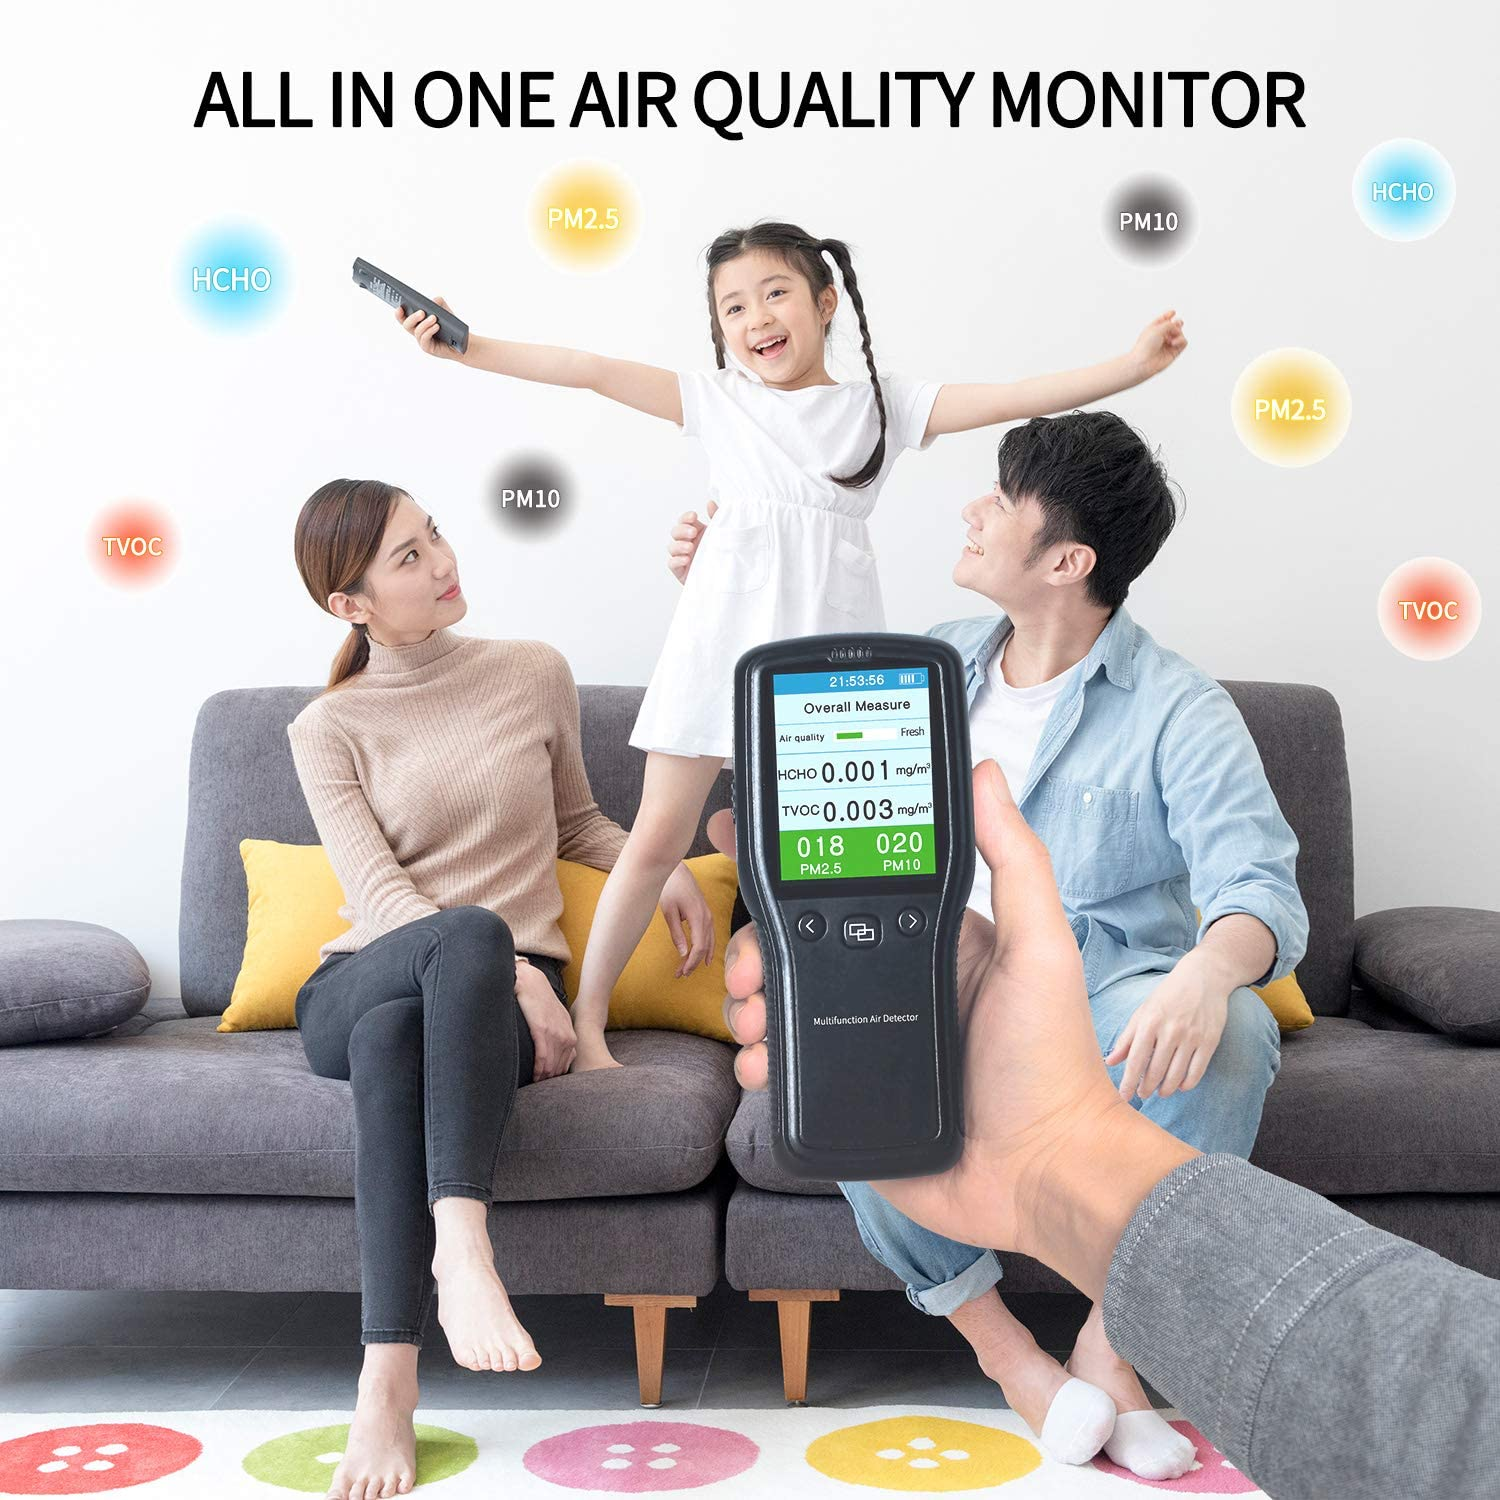 Multifunctional Air Quality Tester,Sherry Air Quality Monitor Indoor Formaldehyde Detector Air Quality Monitor Indoor for TVOC/ PM2.5,PM 10